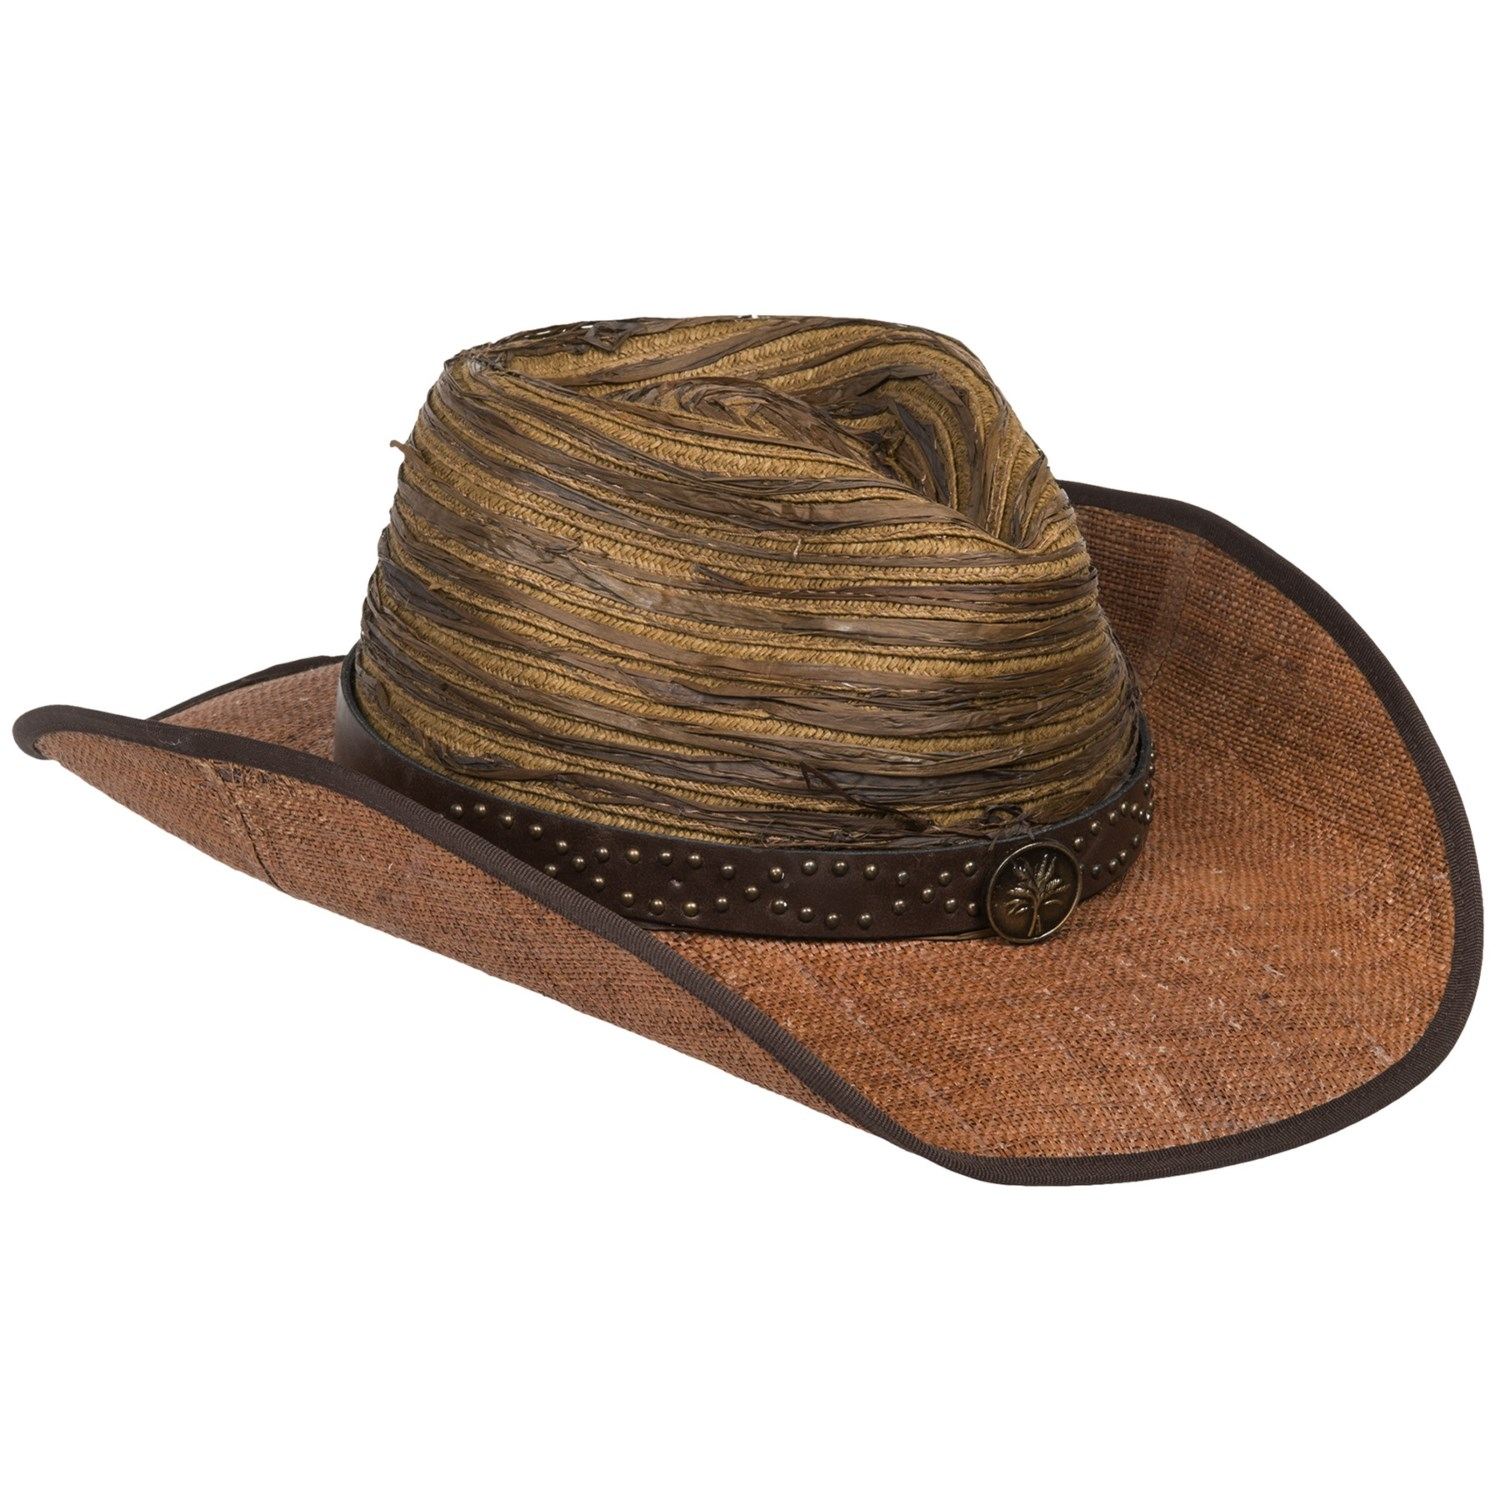 kenny chesney by blue chair bay straw cowboy hat for men and women